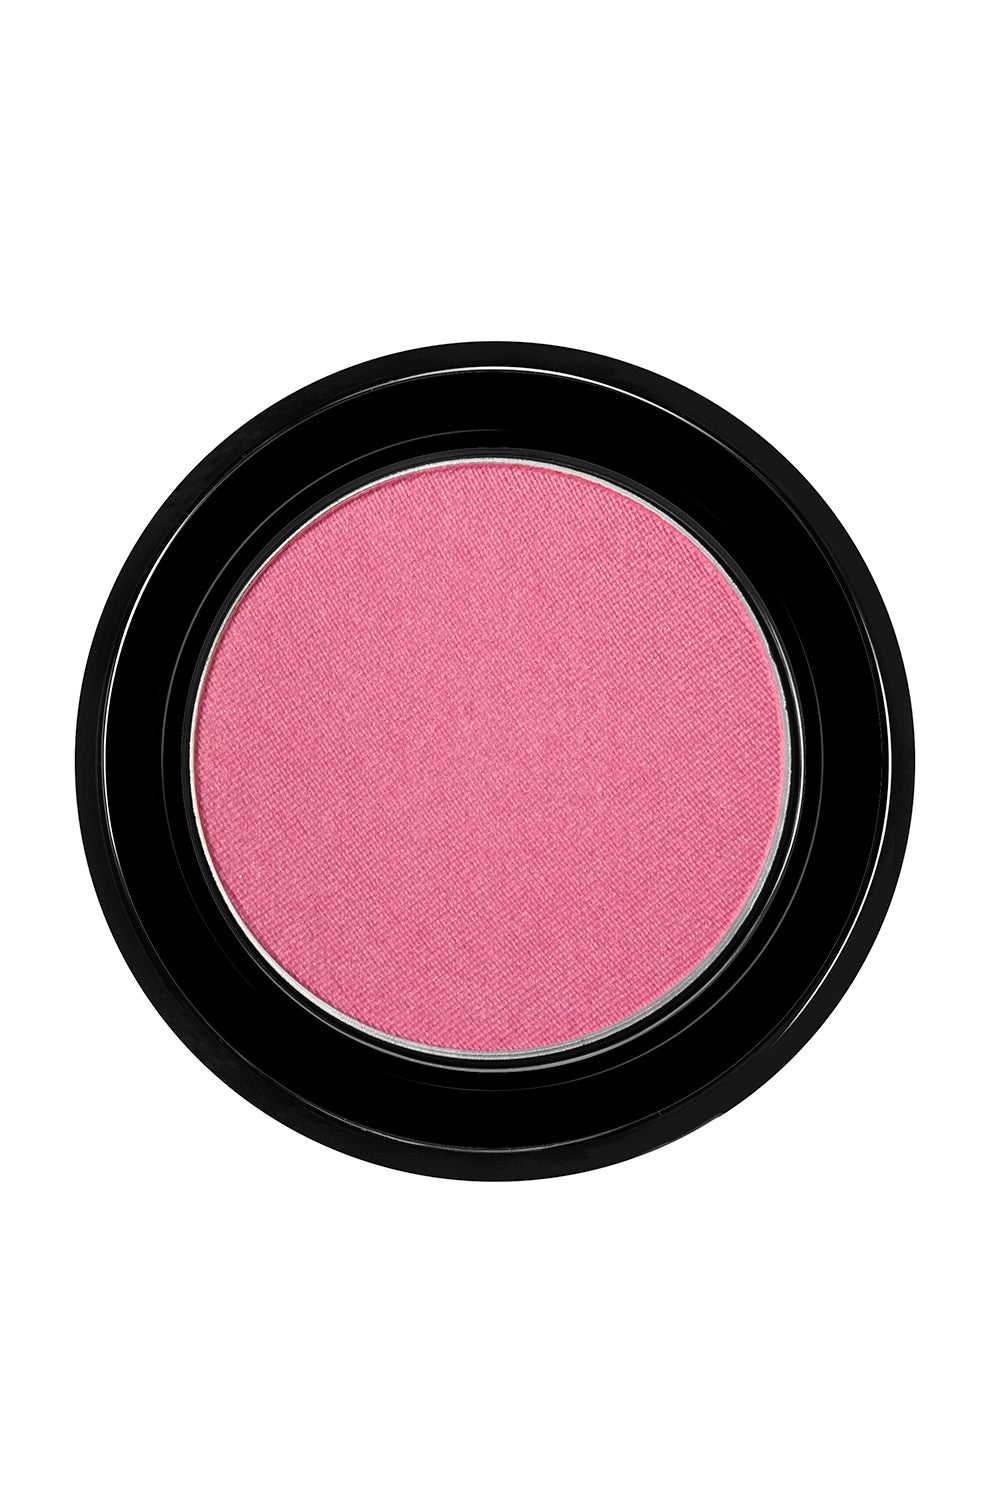 Type 4 Eyeshadow/Blush - Raspberry Sorbet